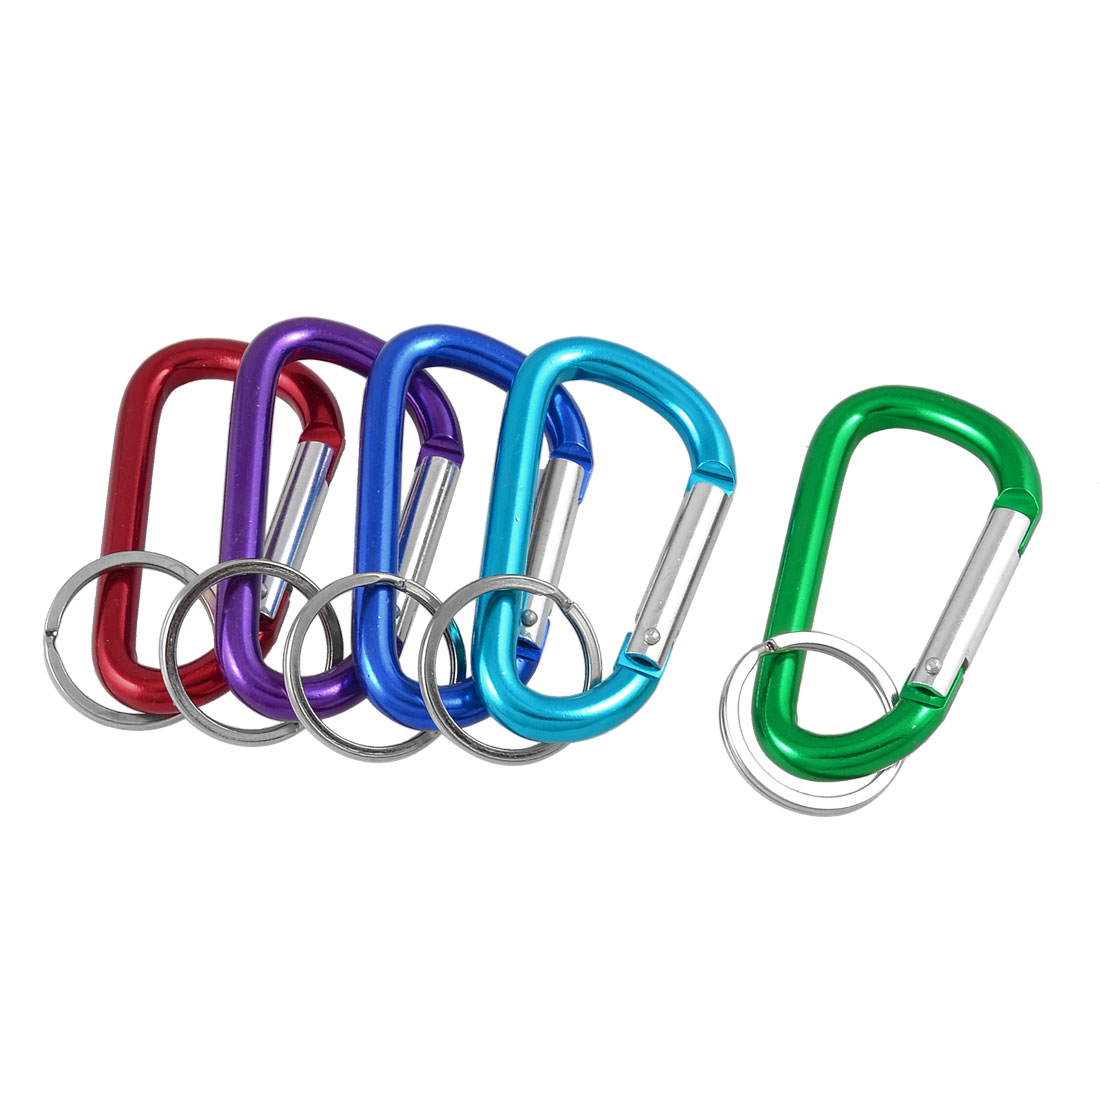 "5 Pcs 3"" Length Assorted Color Aluminum Alloy D Shaped Lockable Carabiners"